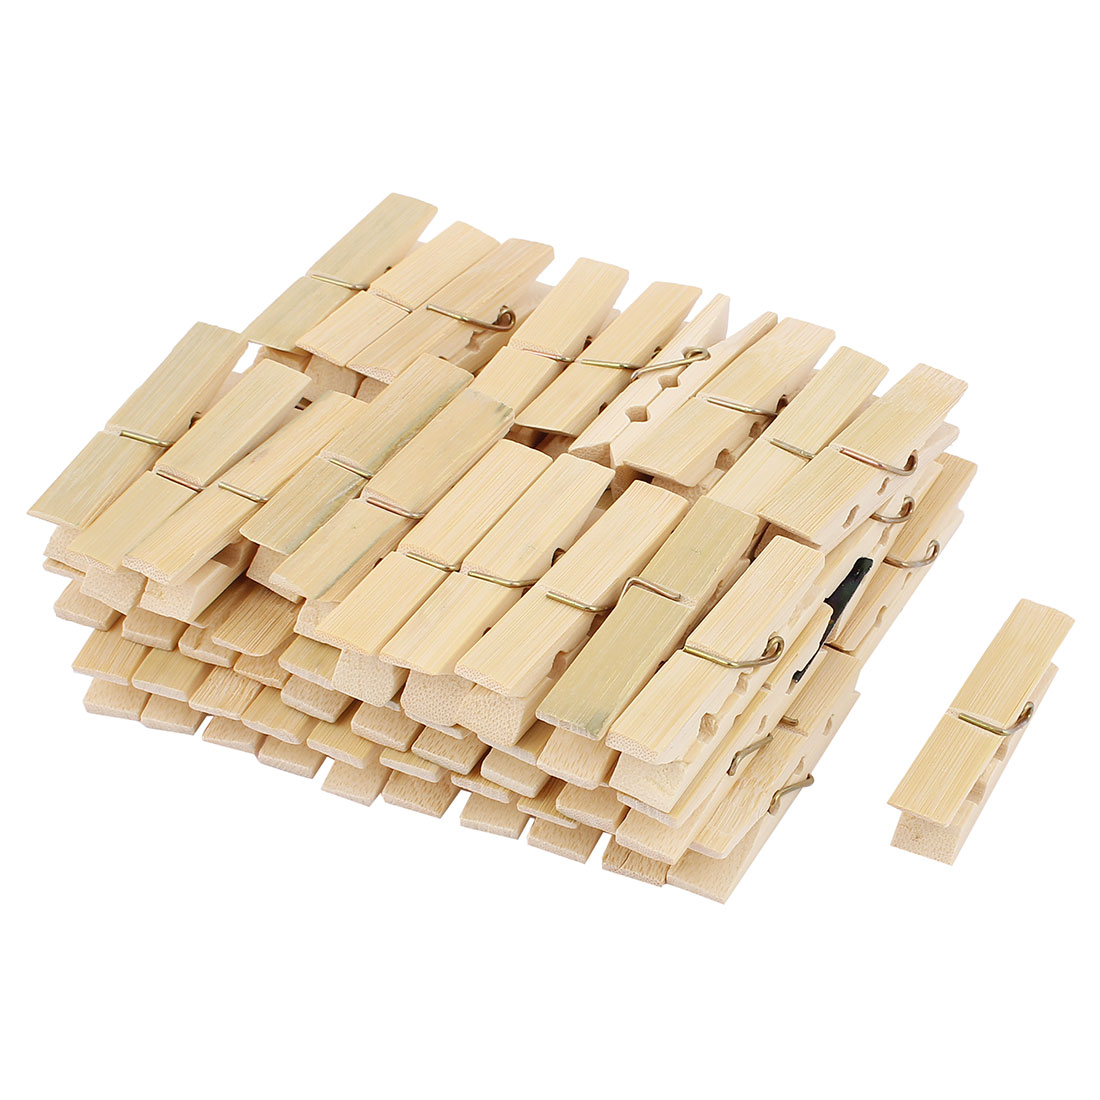 Laundry Spring Socks Clothes Hanging Pins Bamboo Pegs Clothespin Beige 60pcs